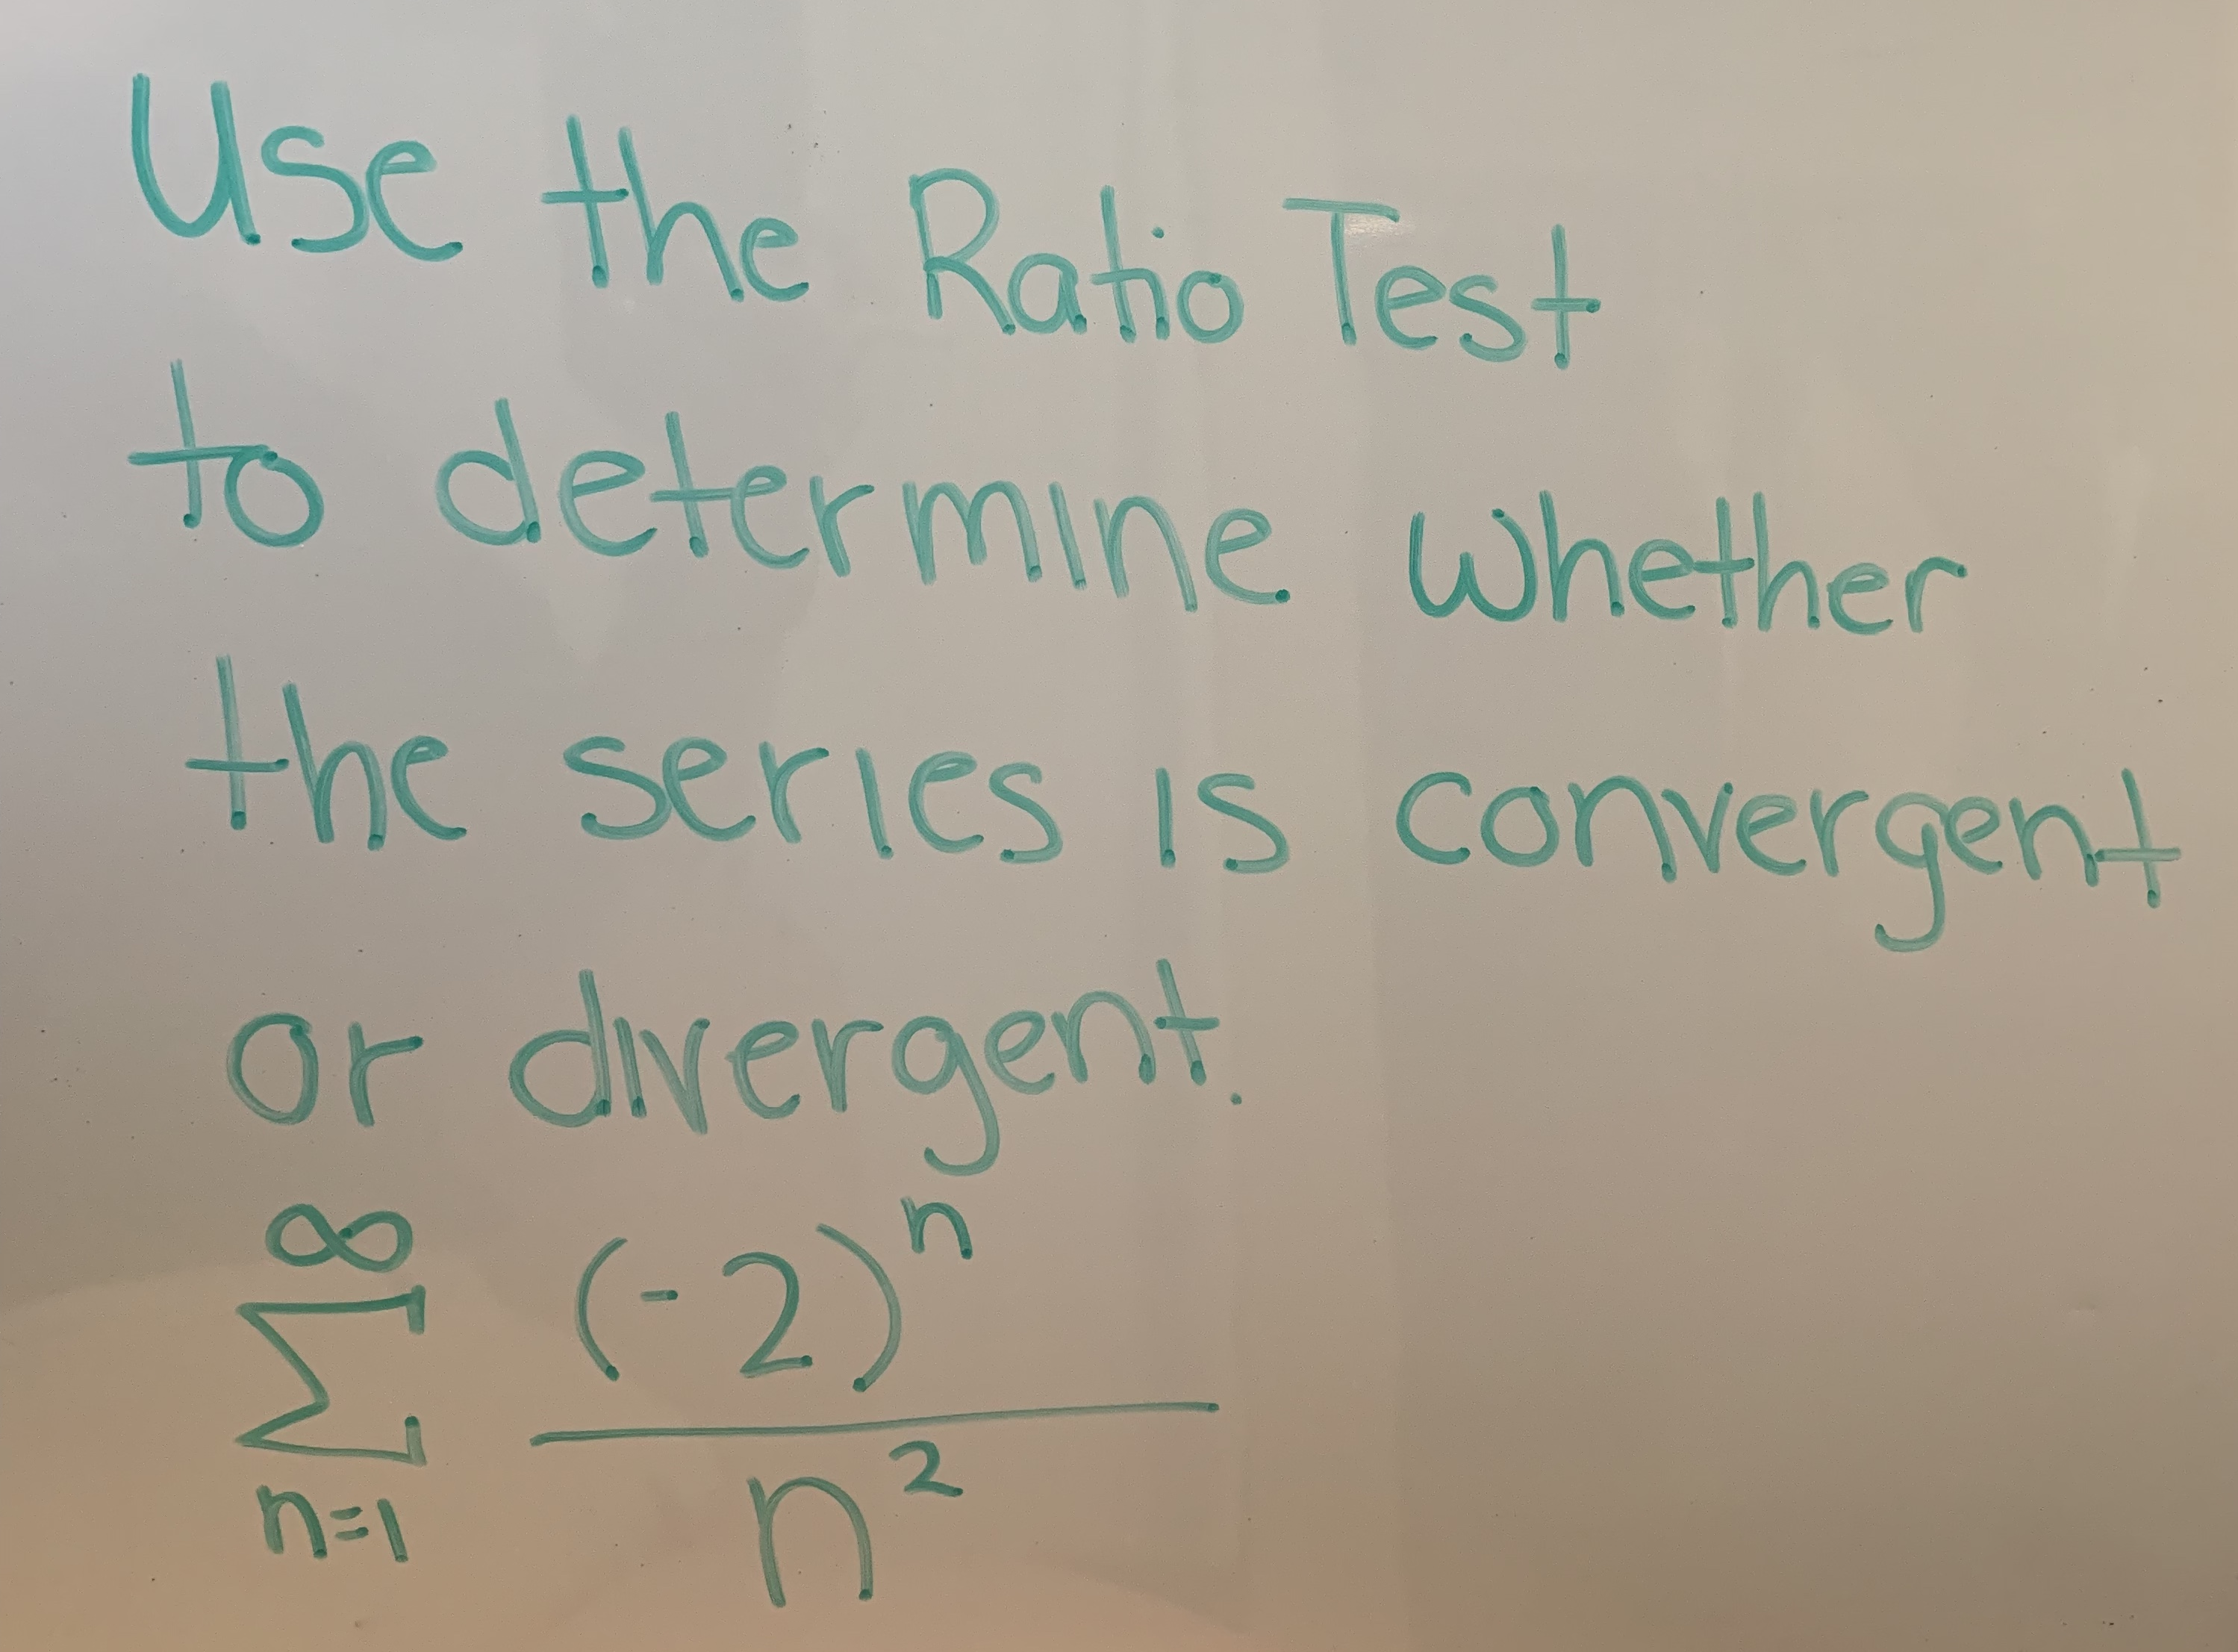 Use the Raho Test to determine whethen the serics is convergen Or dveraent 2.